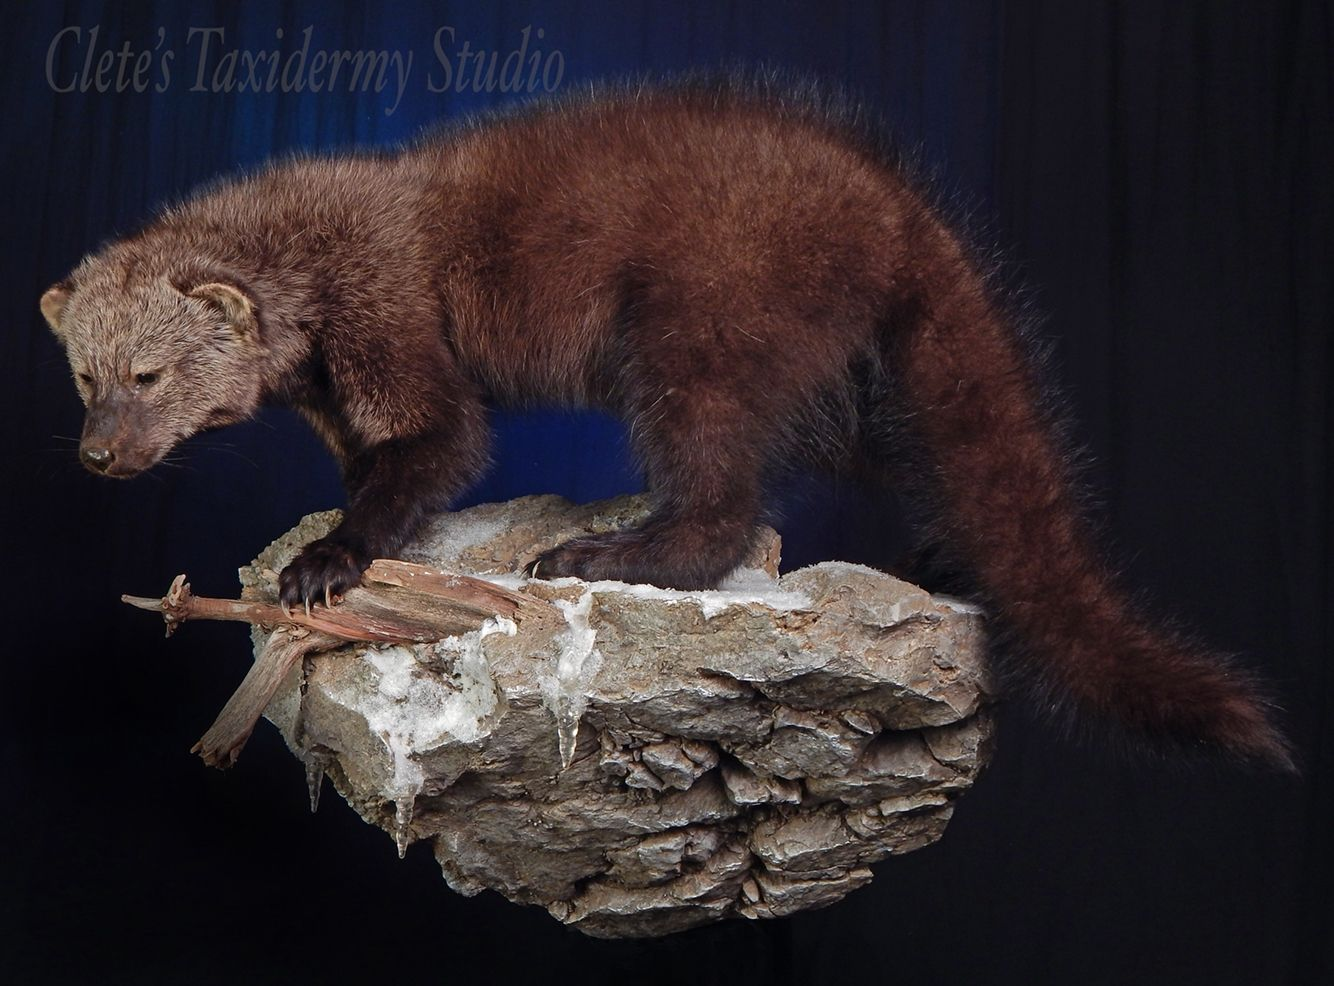 Clete's Taxidermy Studio Taxidermy, Fisher cat, Fisher